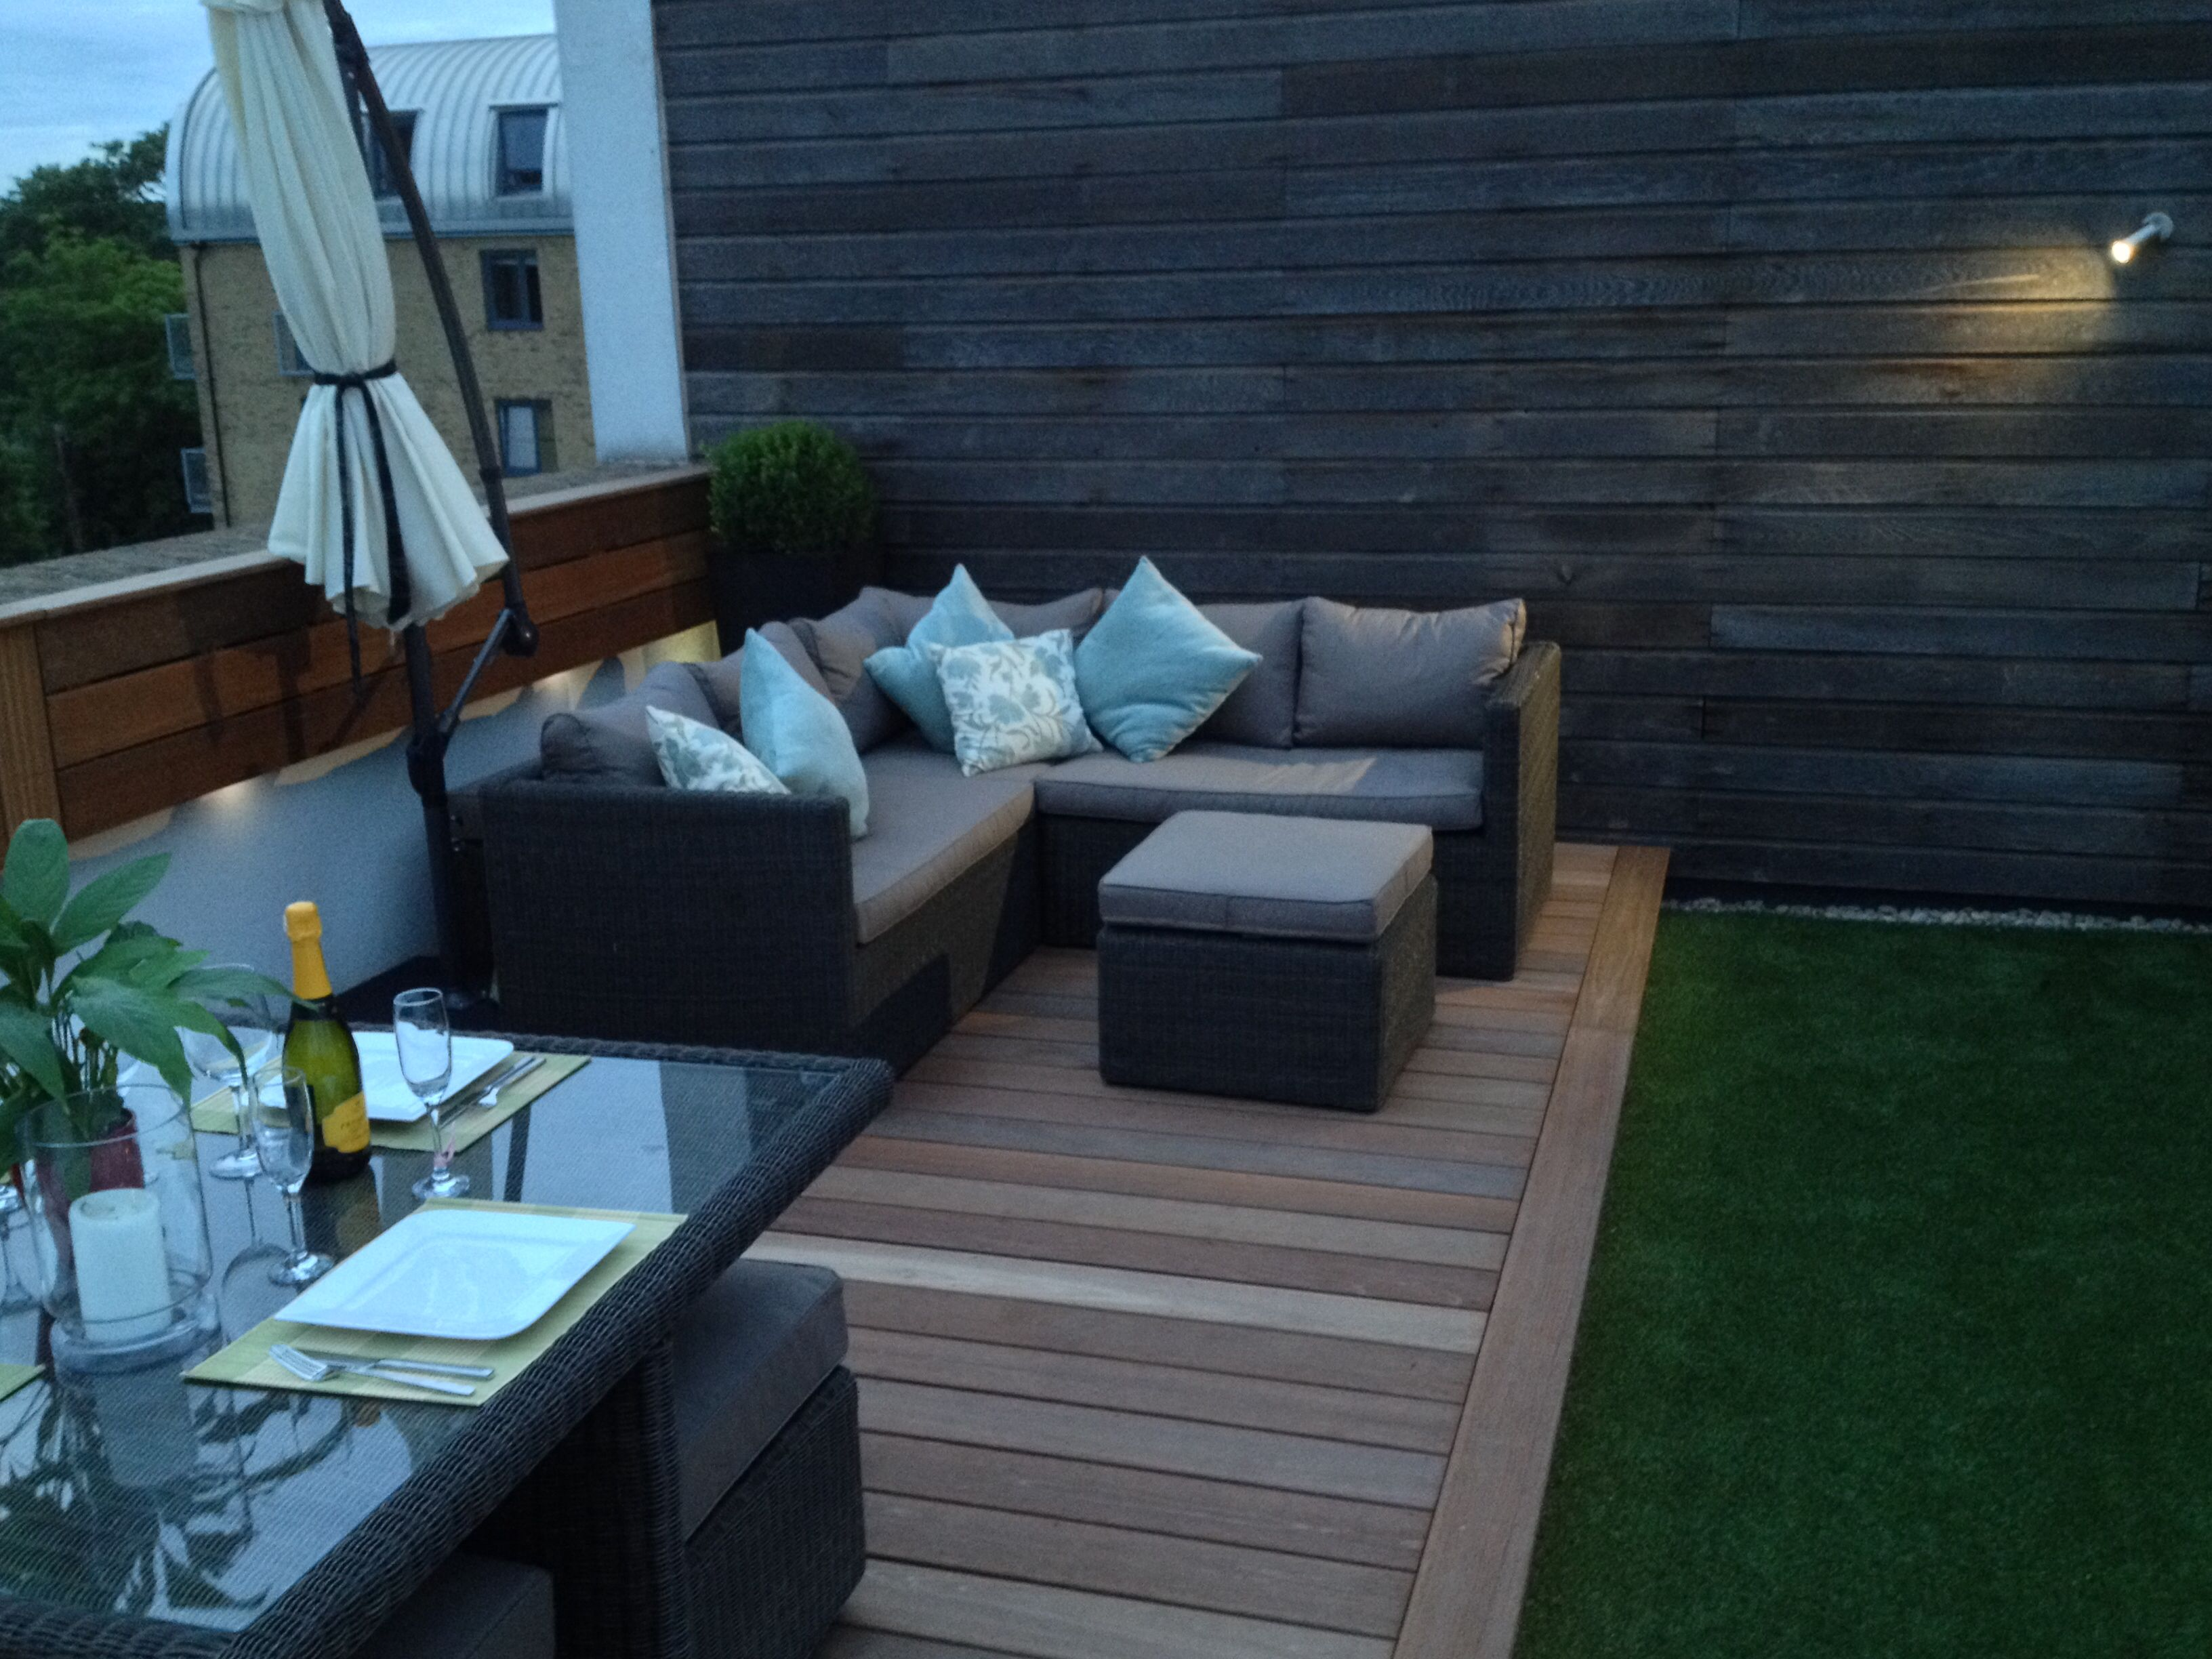 Garden Ideas Decking And Paving roof terrace furniture on hardwood deck with artificial grass